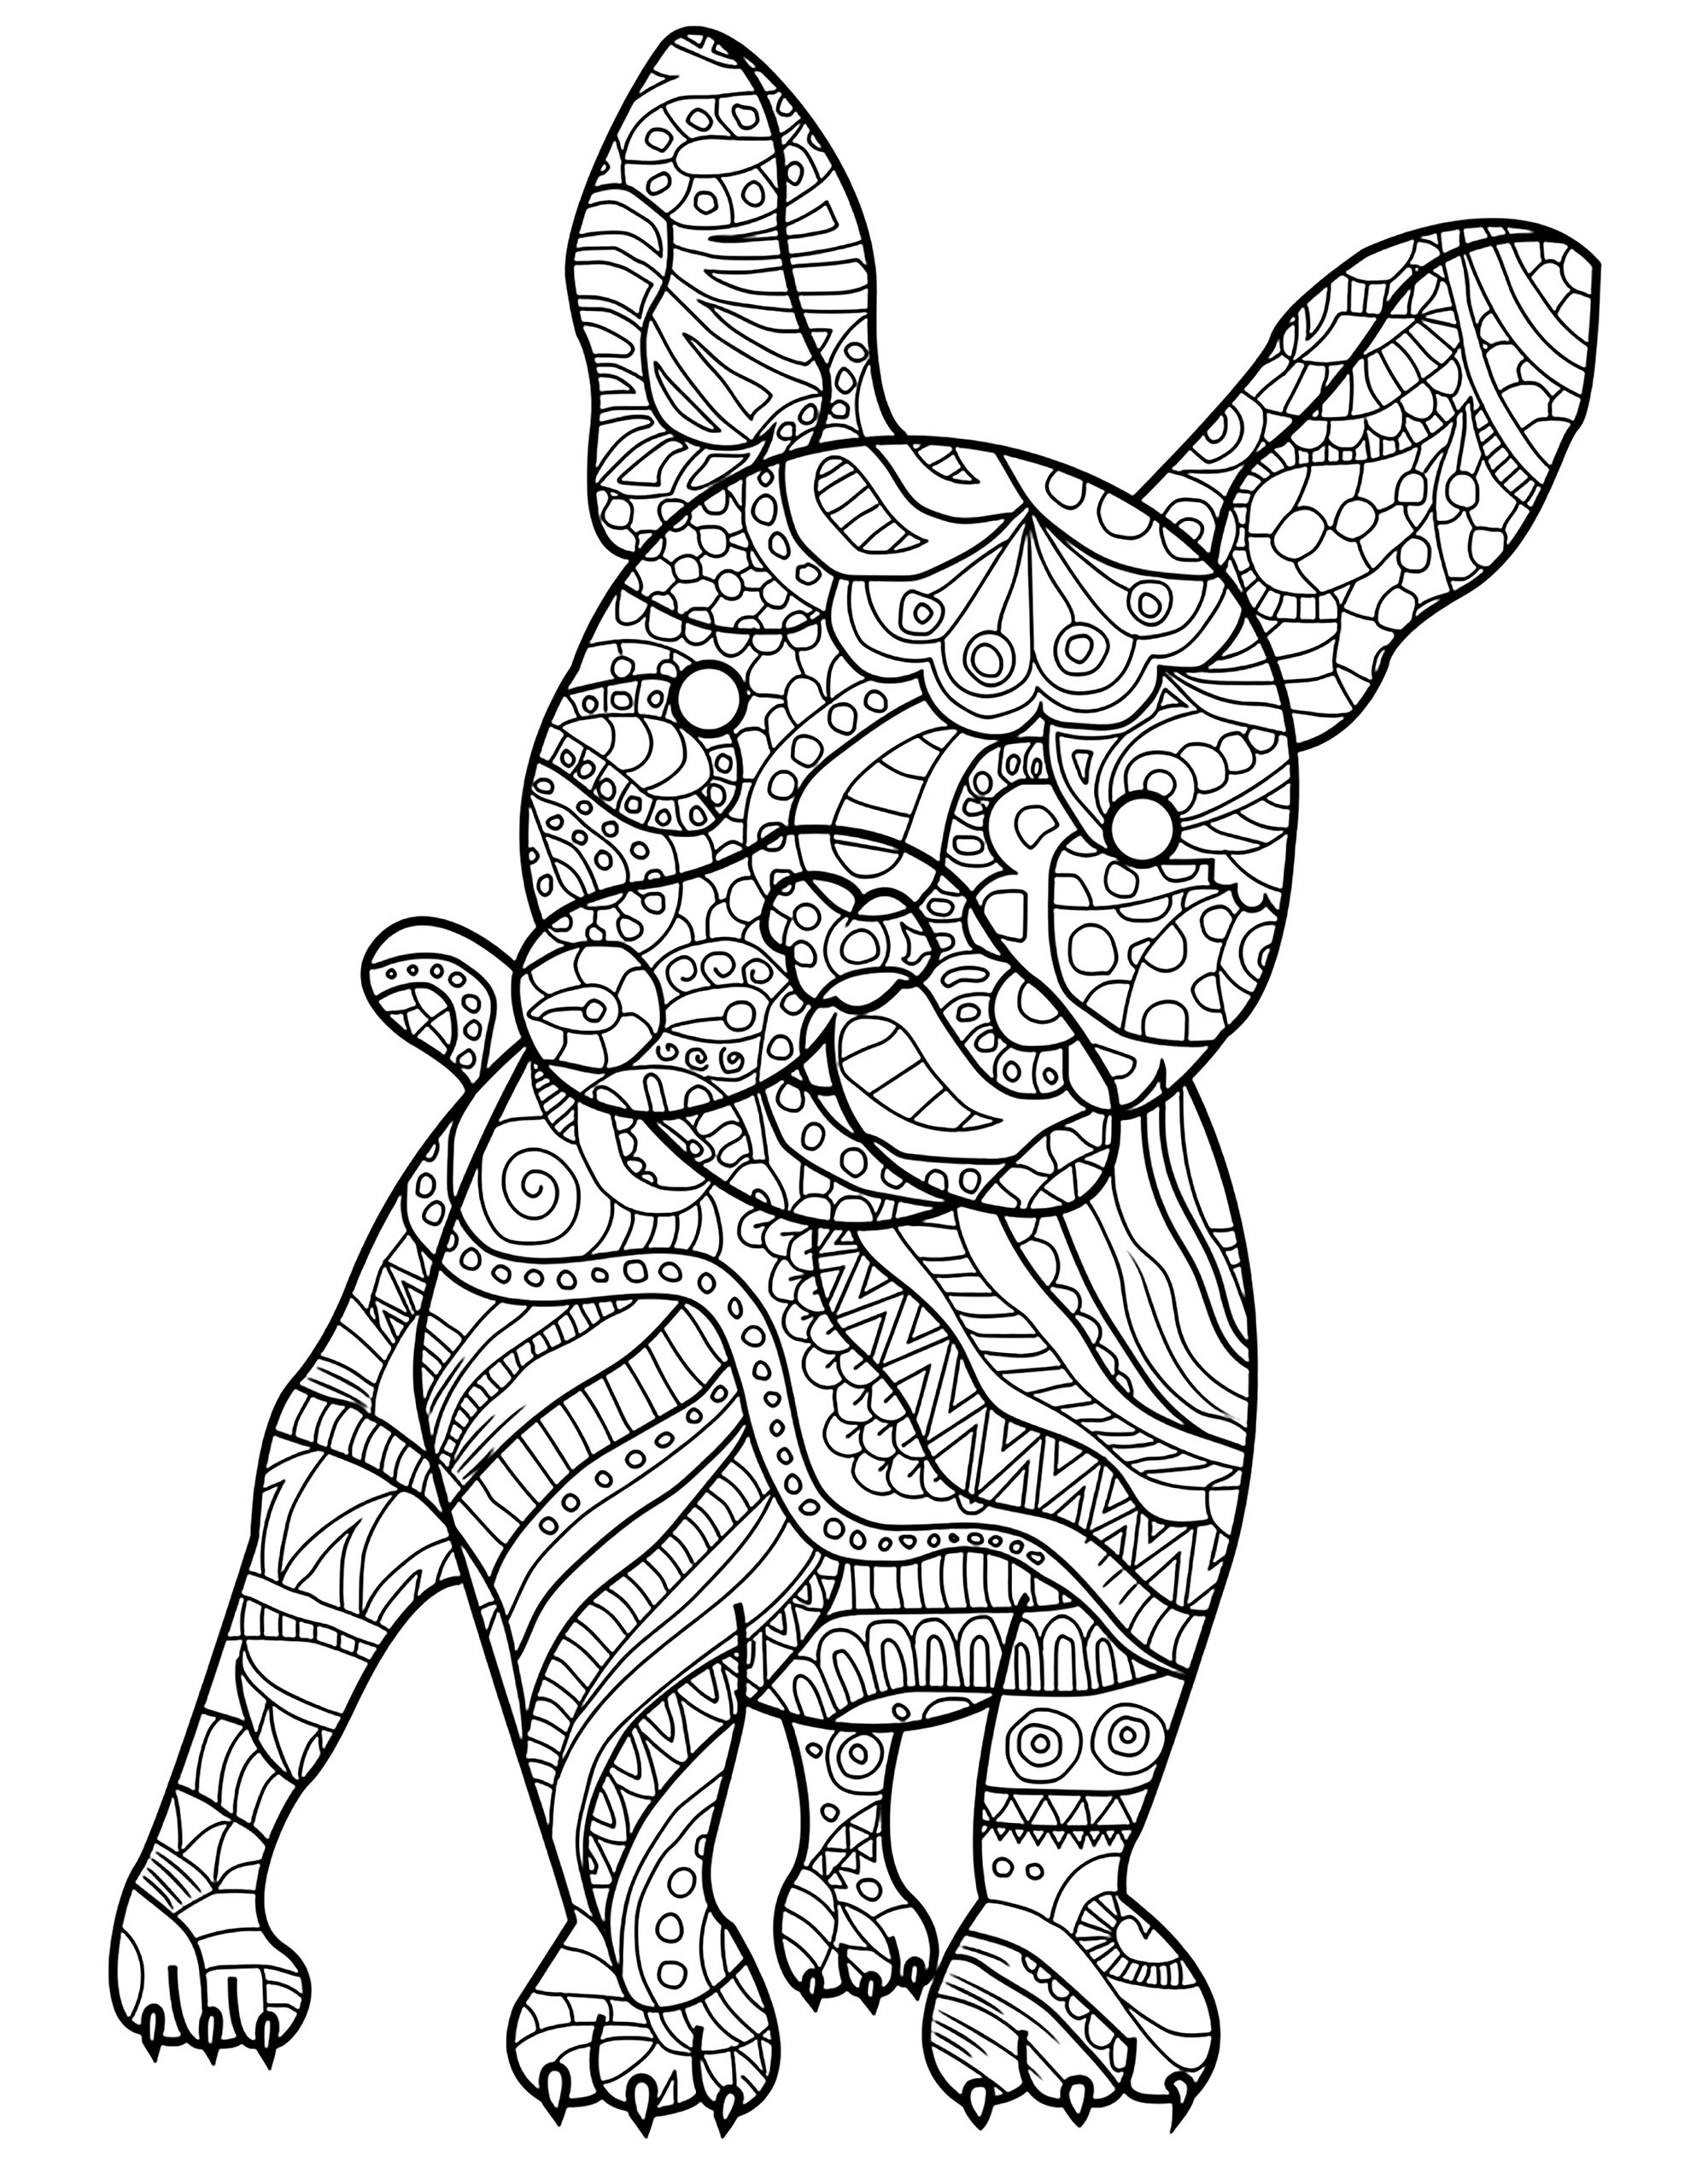 coloring pages for adults dogs free book dog poodle dogs adult coloring pages dogs for coloring adults pages